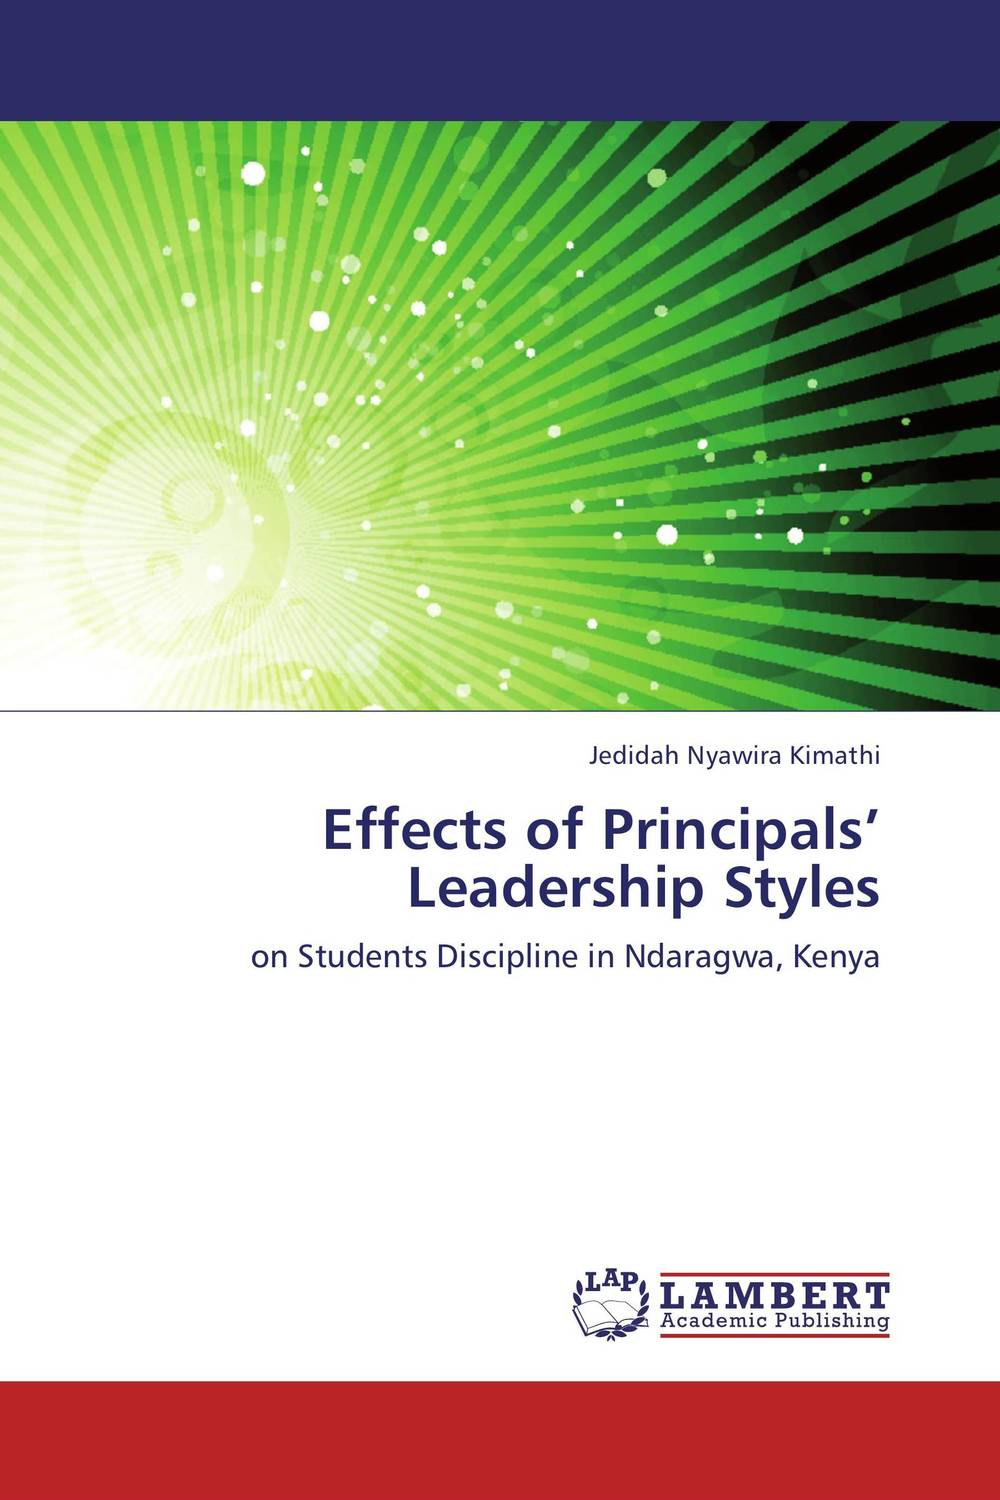 Effects of Principals' Leadership Styles